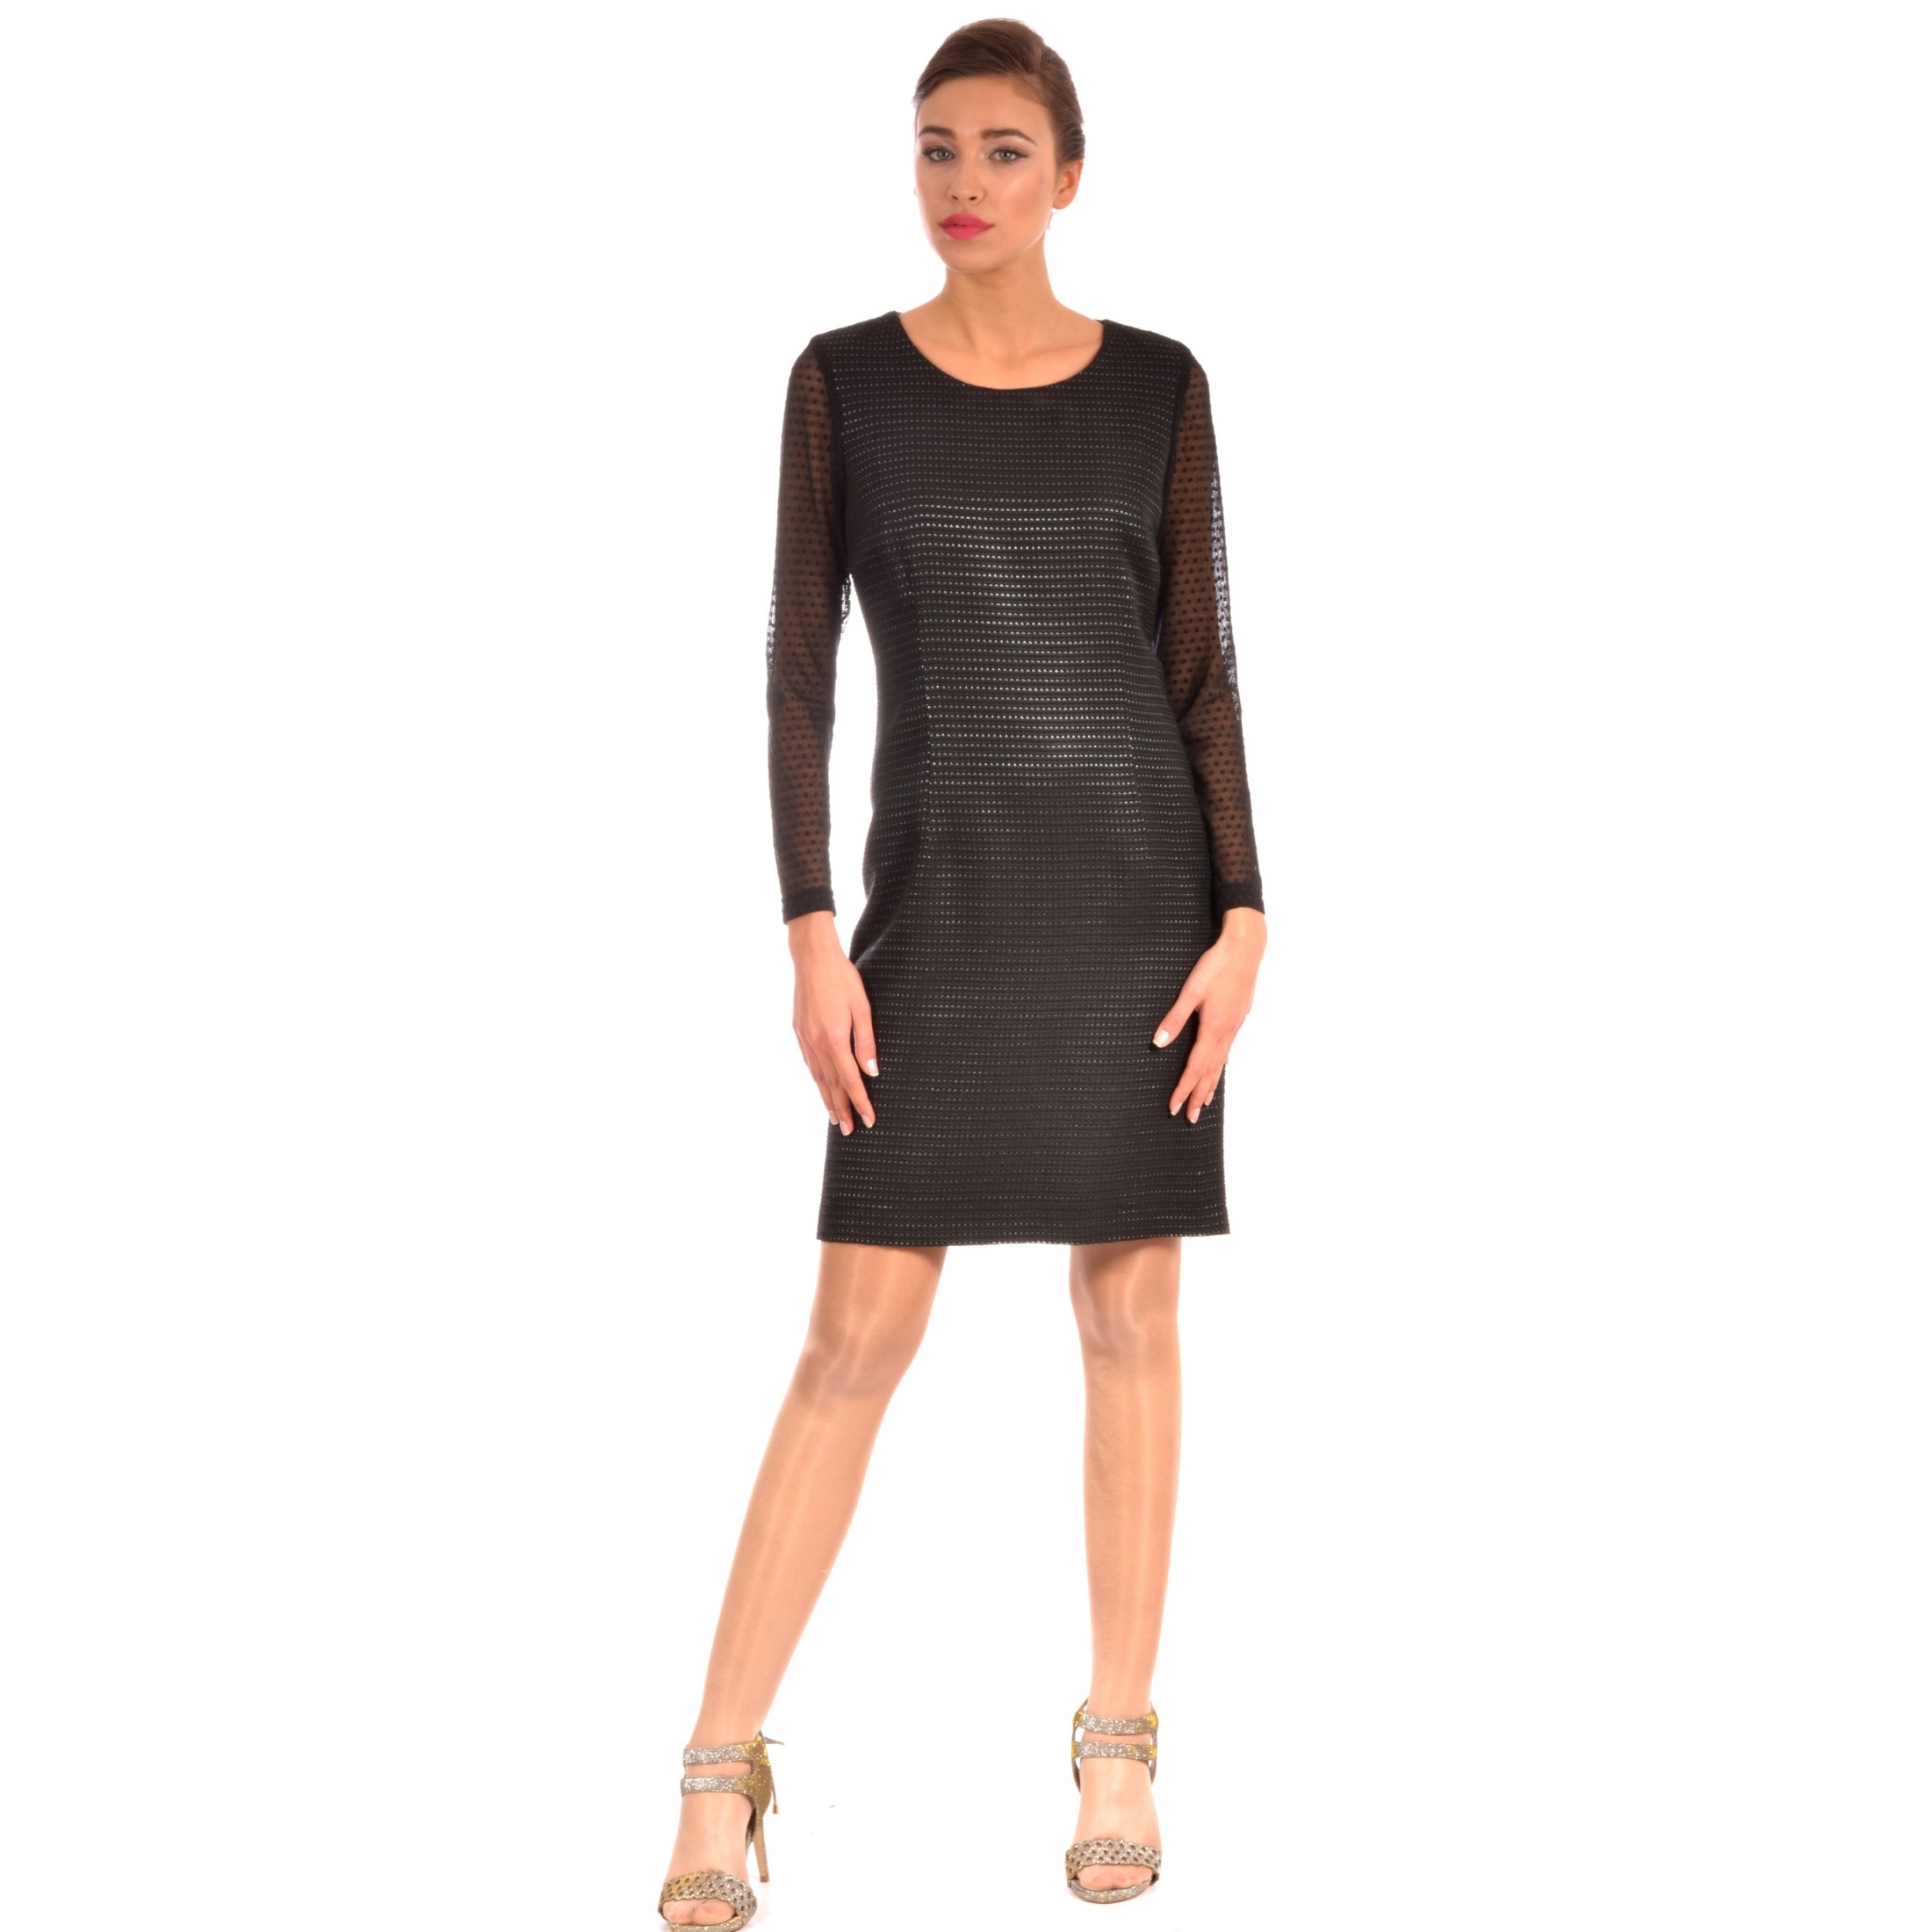 ženska haljina crna, women's dress black